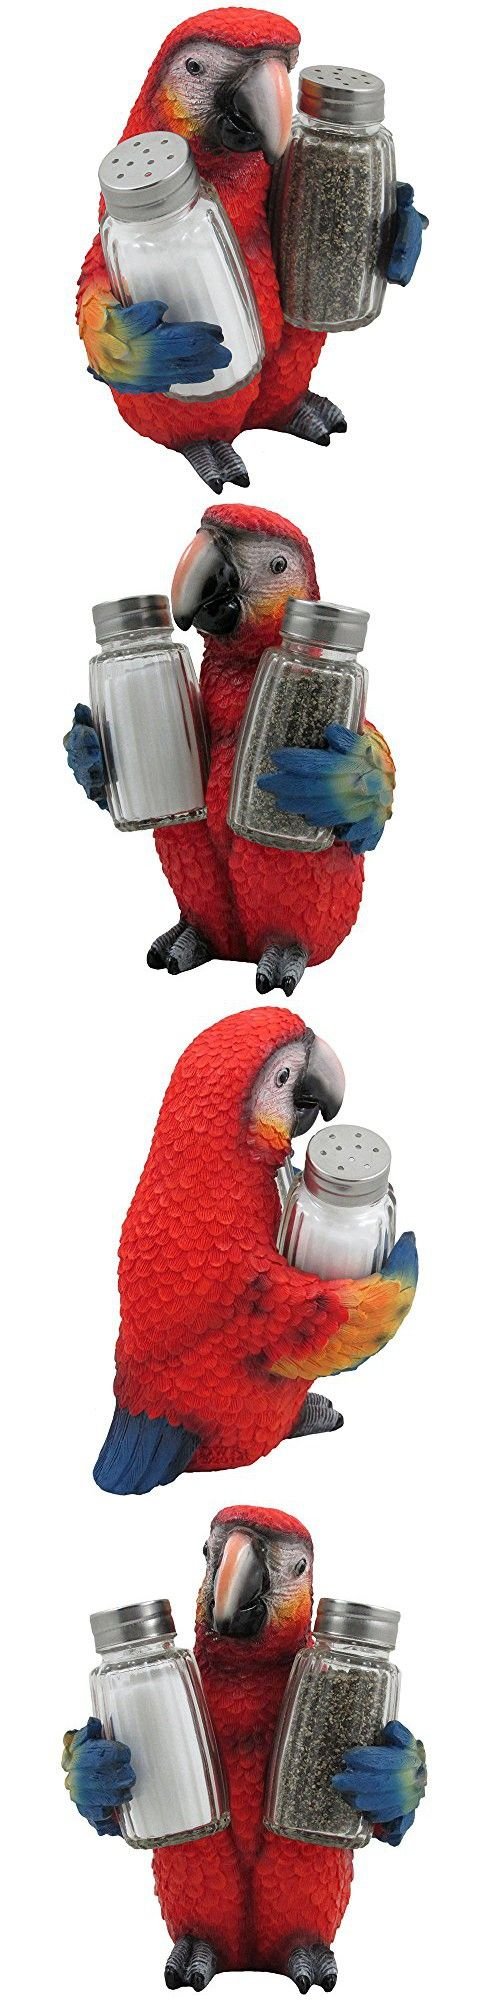 Tropical Parrot Glass Salt and Pepper Shaker Set with Holder Figurine for Beach Bar or Restaurant & Nautical Kitchen Table Decor or Decorative Macaw and Bird Sculpture Spice Rack Gifts